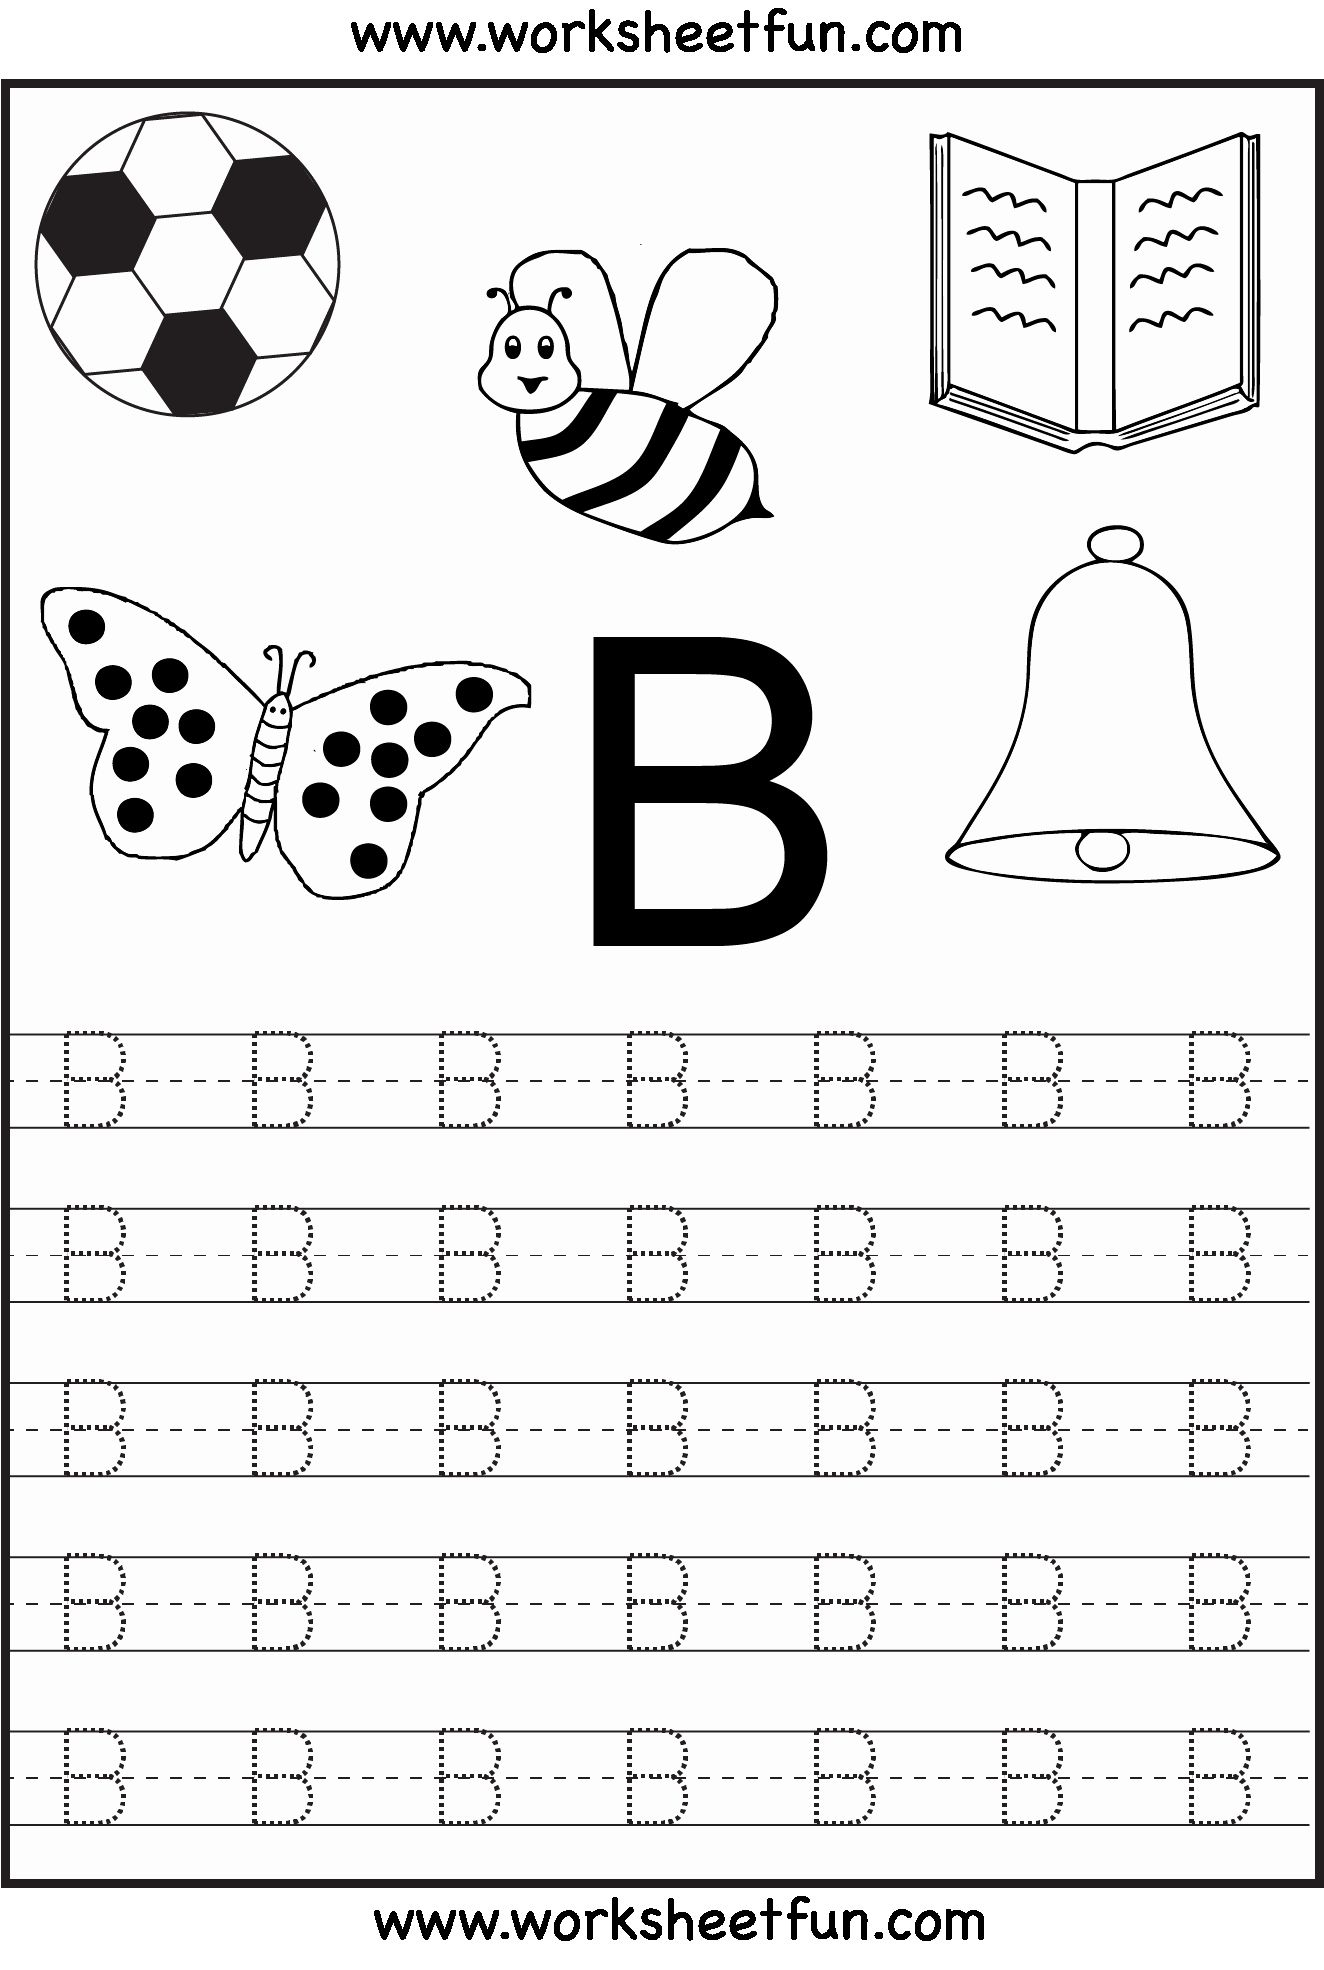 Alphabet Coloring Worksheets A-Z Pdf Luxury Free Printable pertaining to Alphabet Tracing Worksheets A-Z Pdf